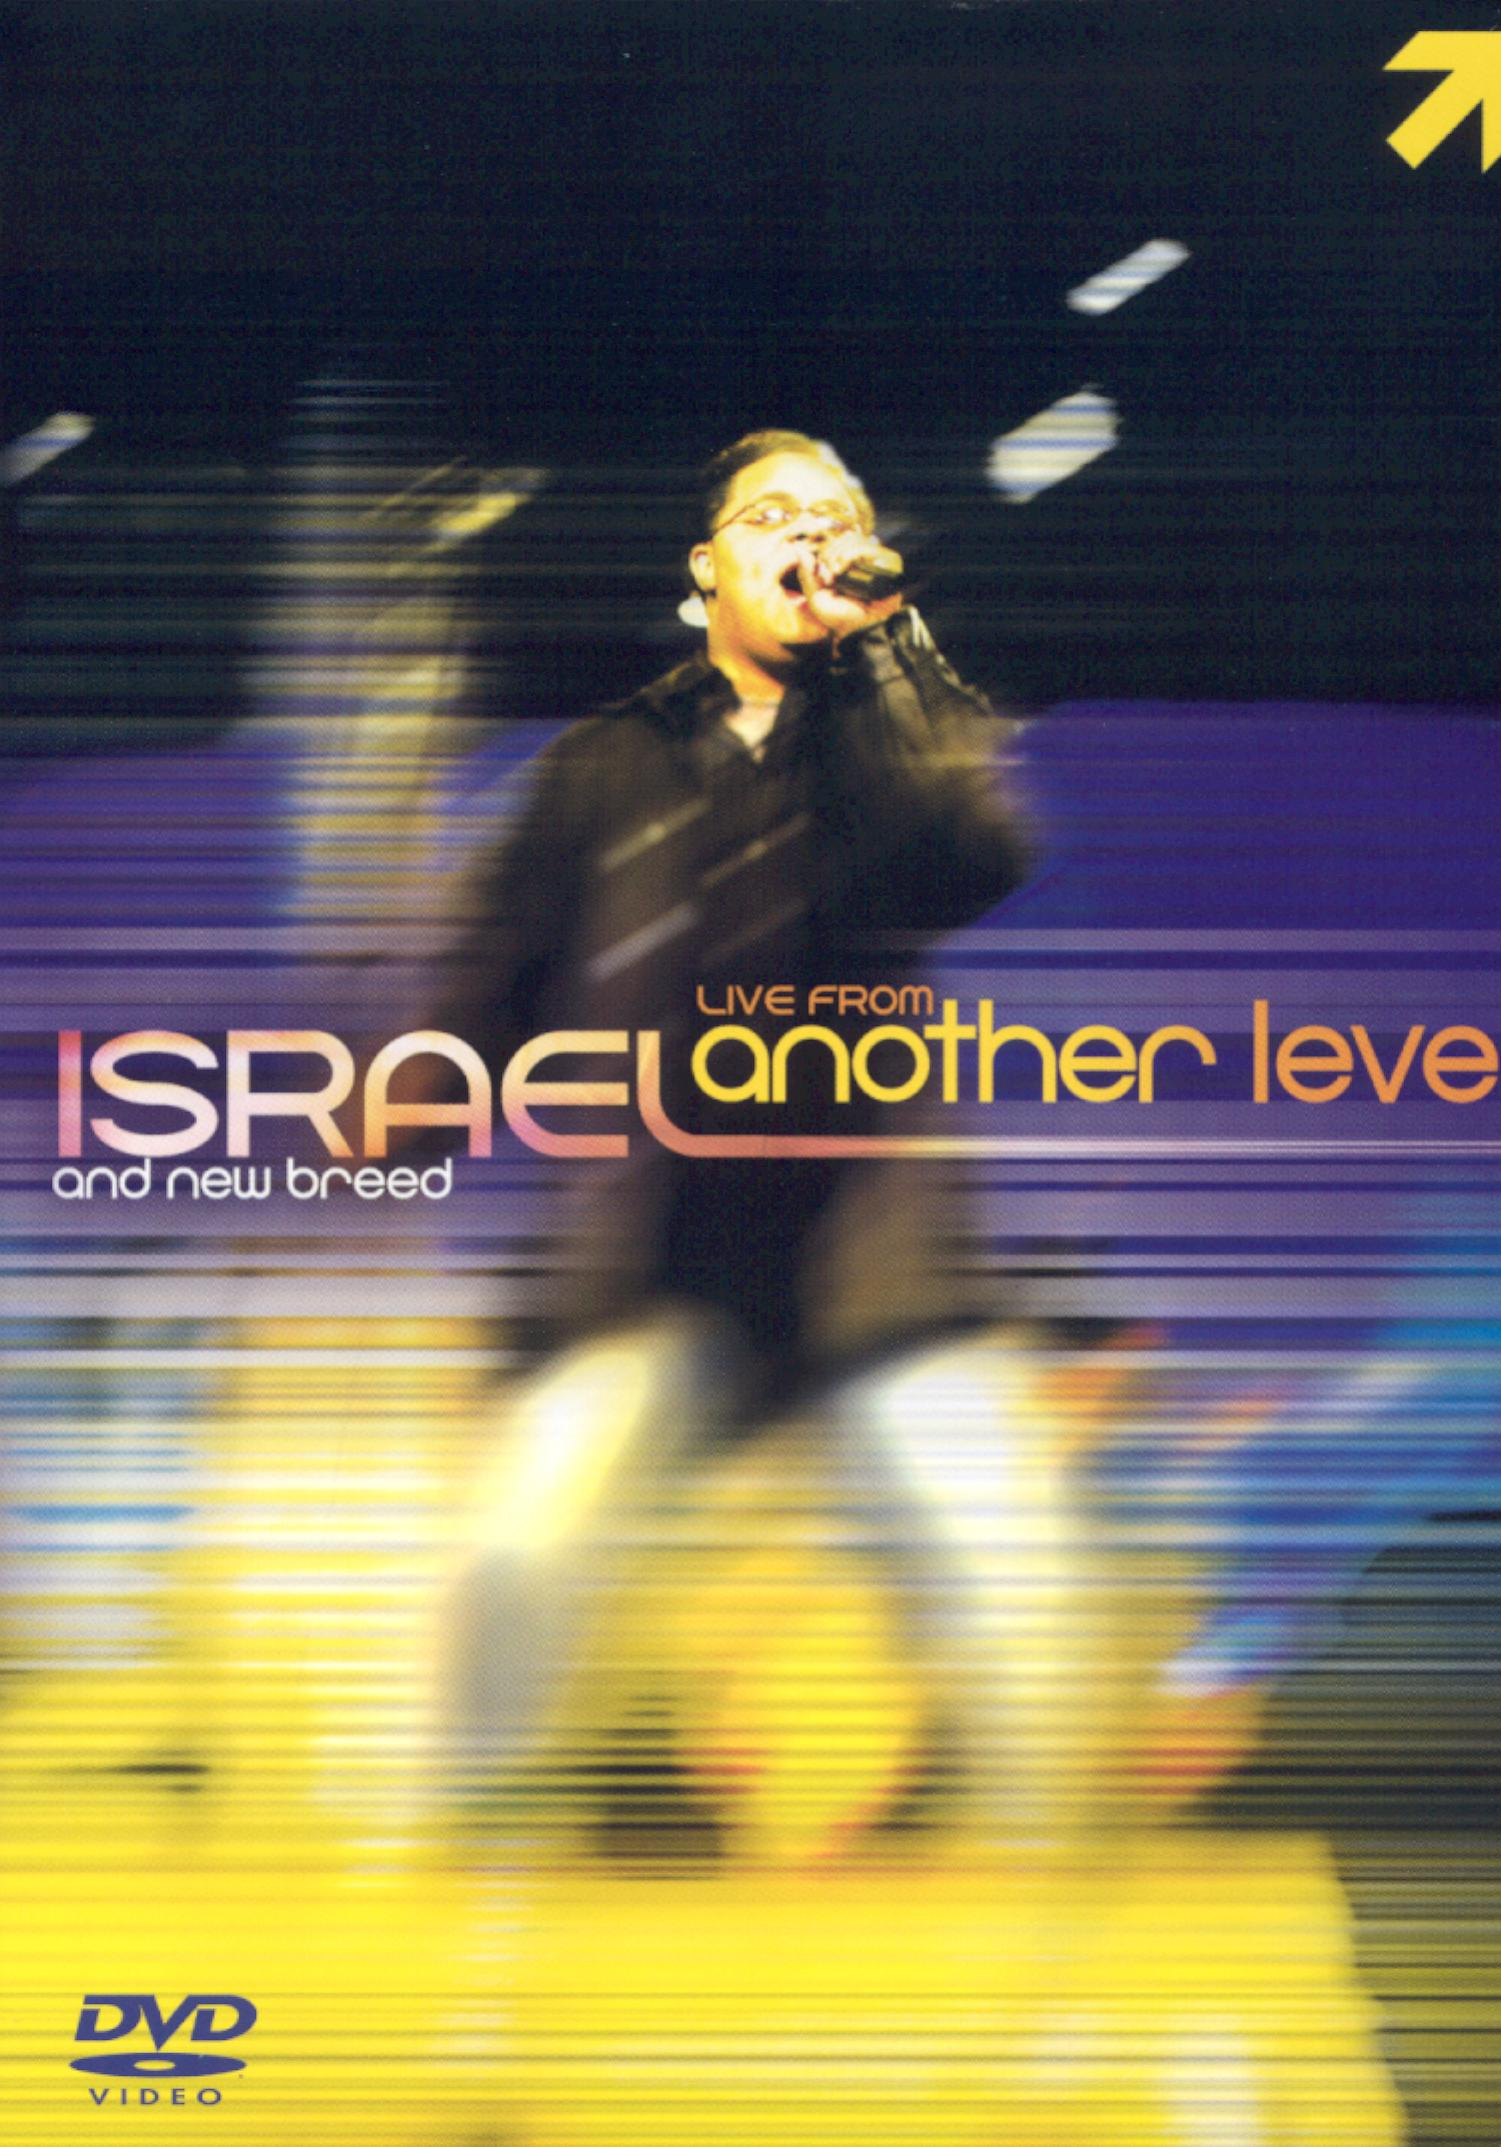 Israel and New Breed: Live From Another Level... The Video